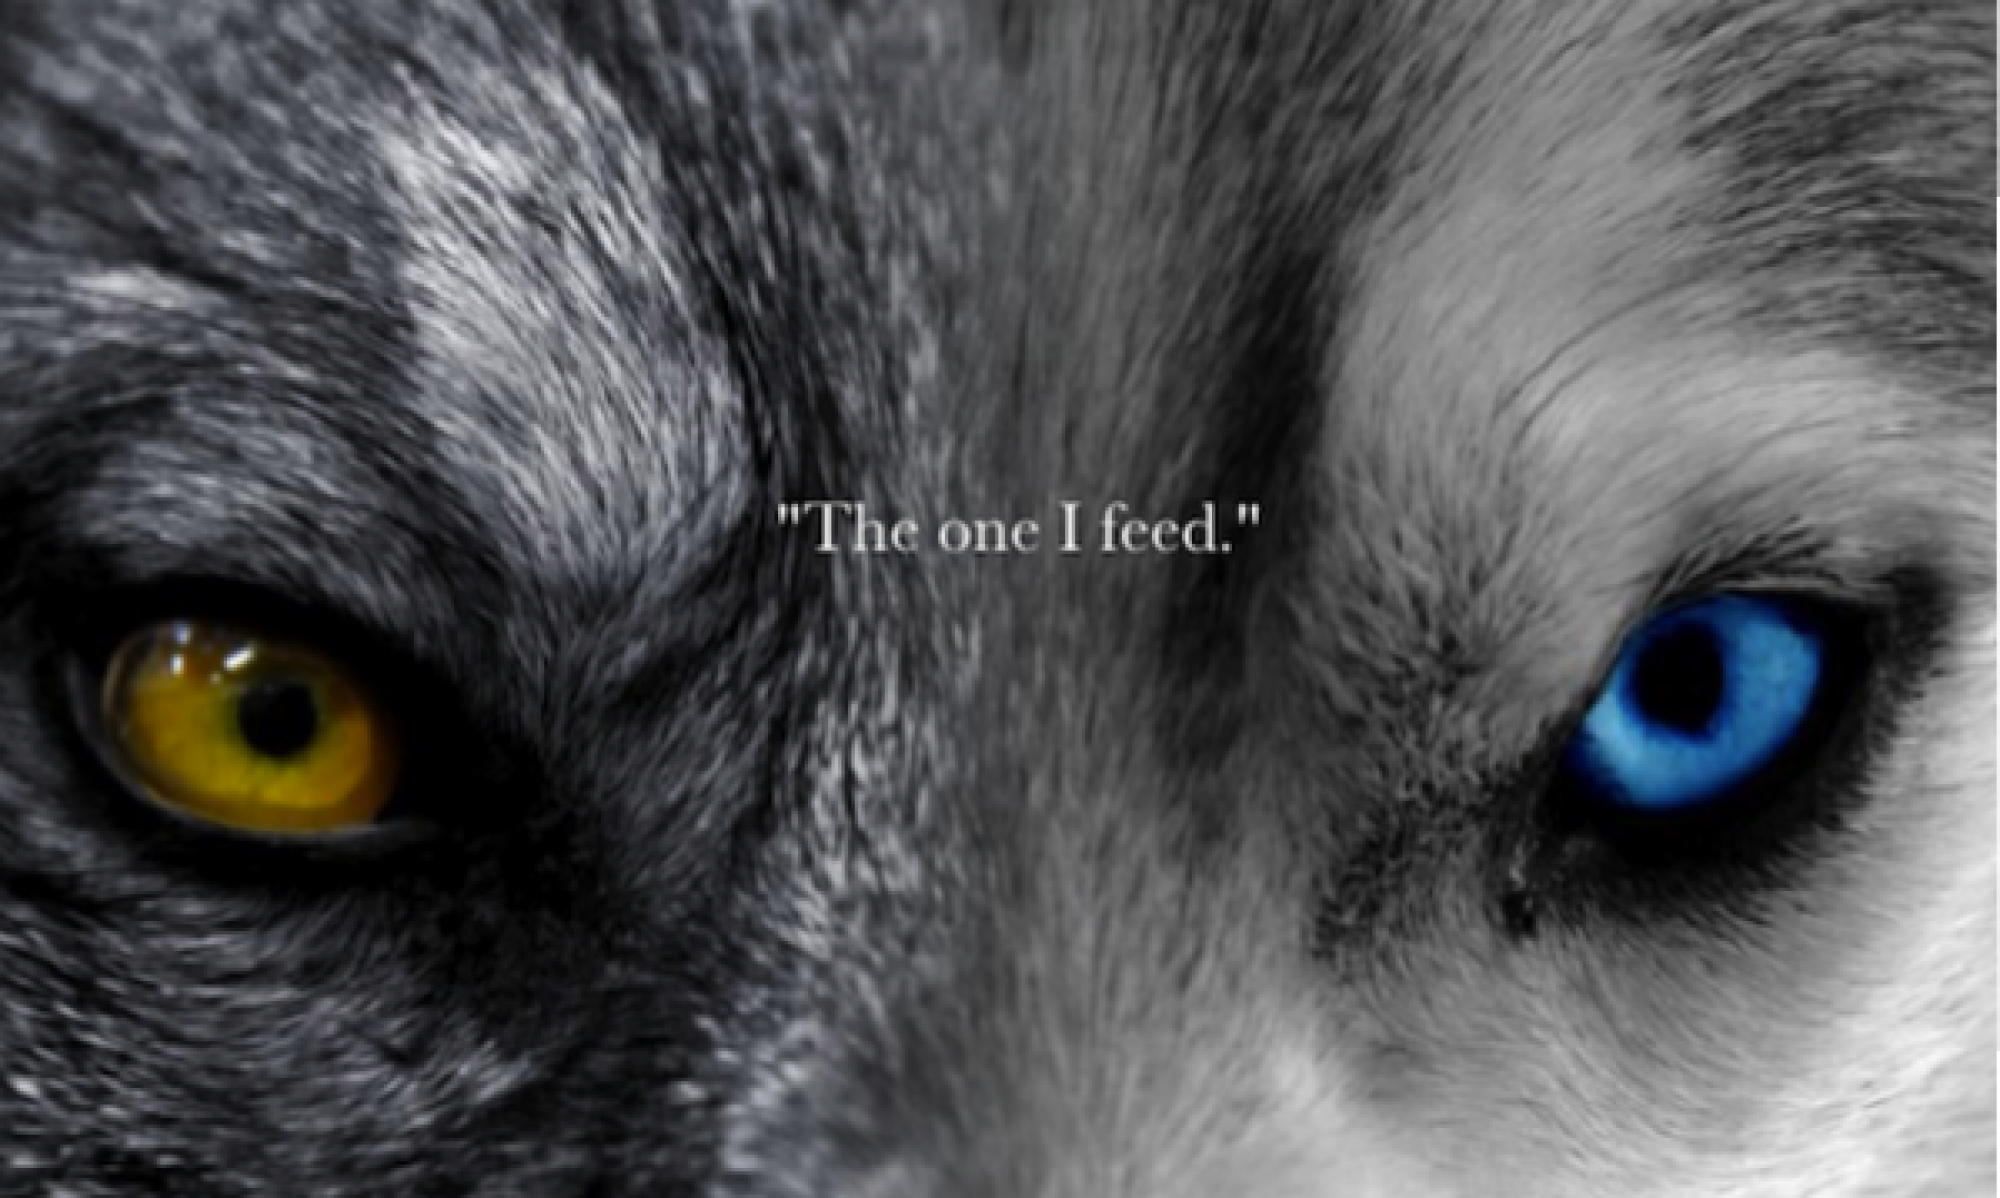 The good wolf,choose to feed him